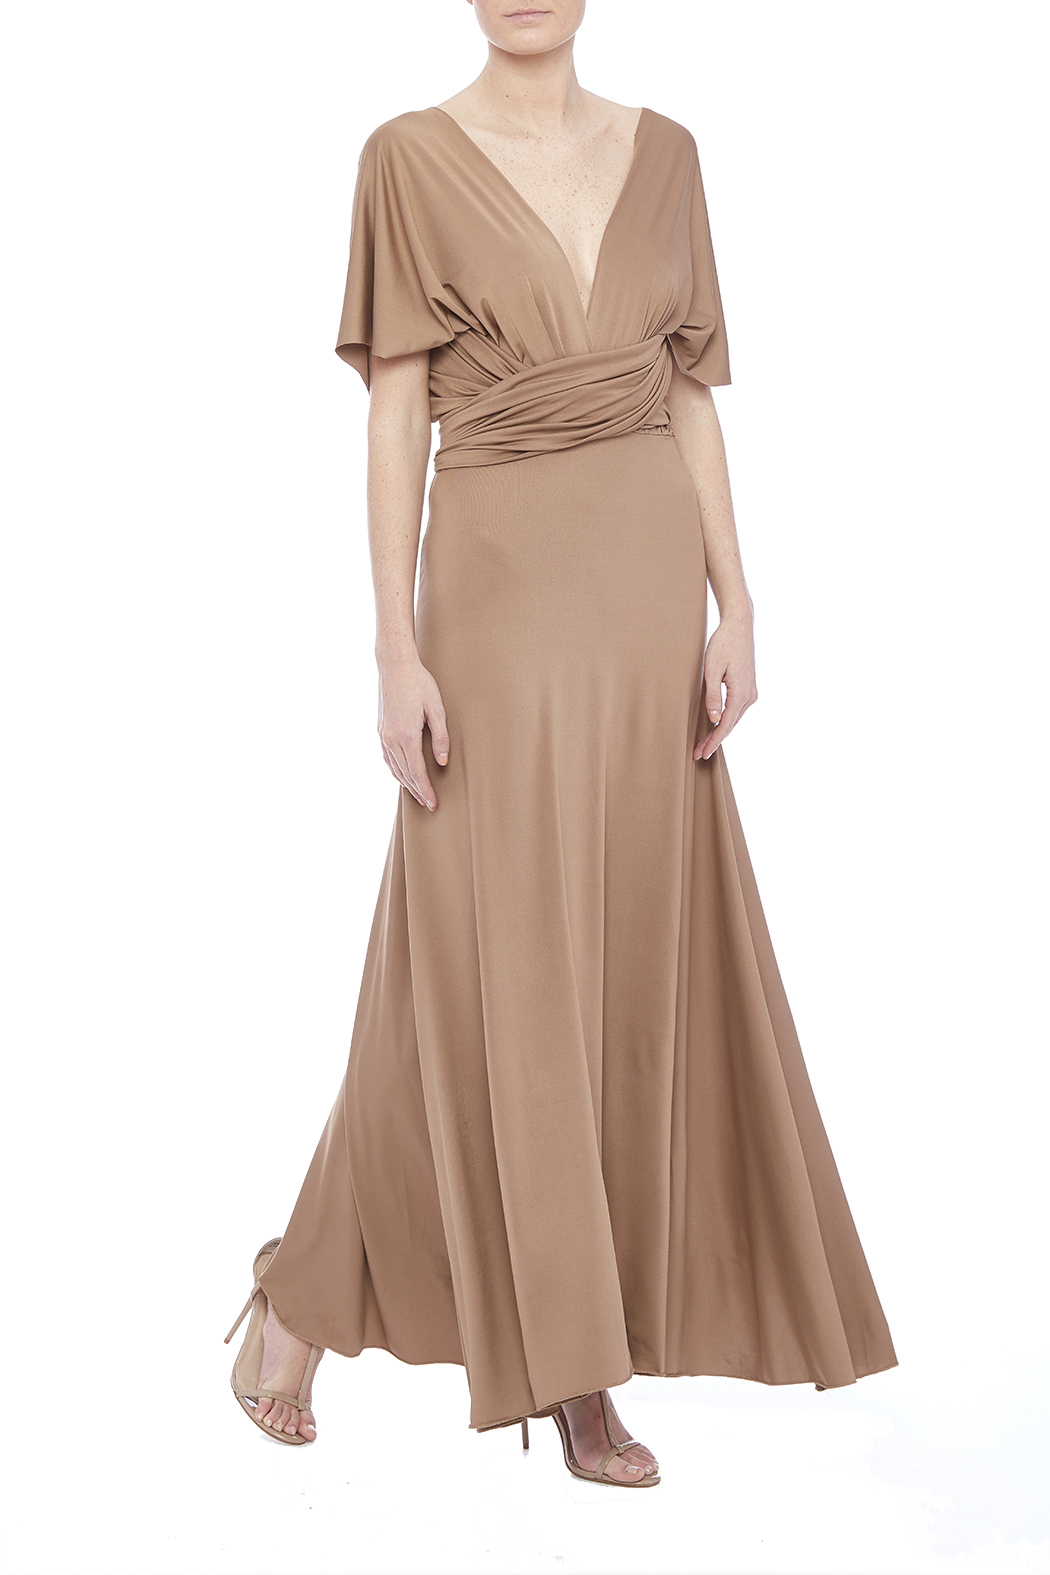 tu-anh boutique Goddess Maxi Dress - Front Full Image